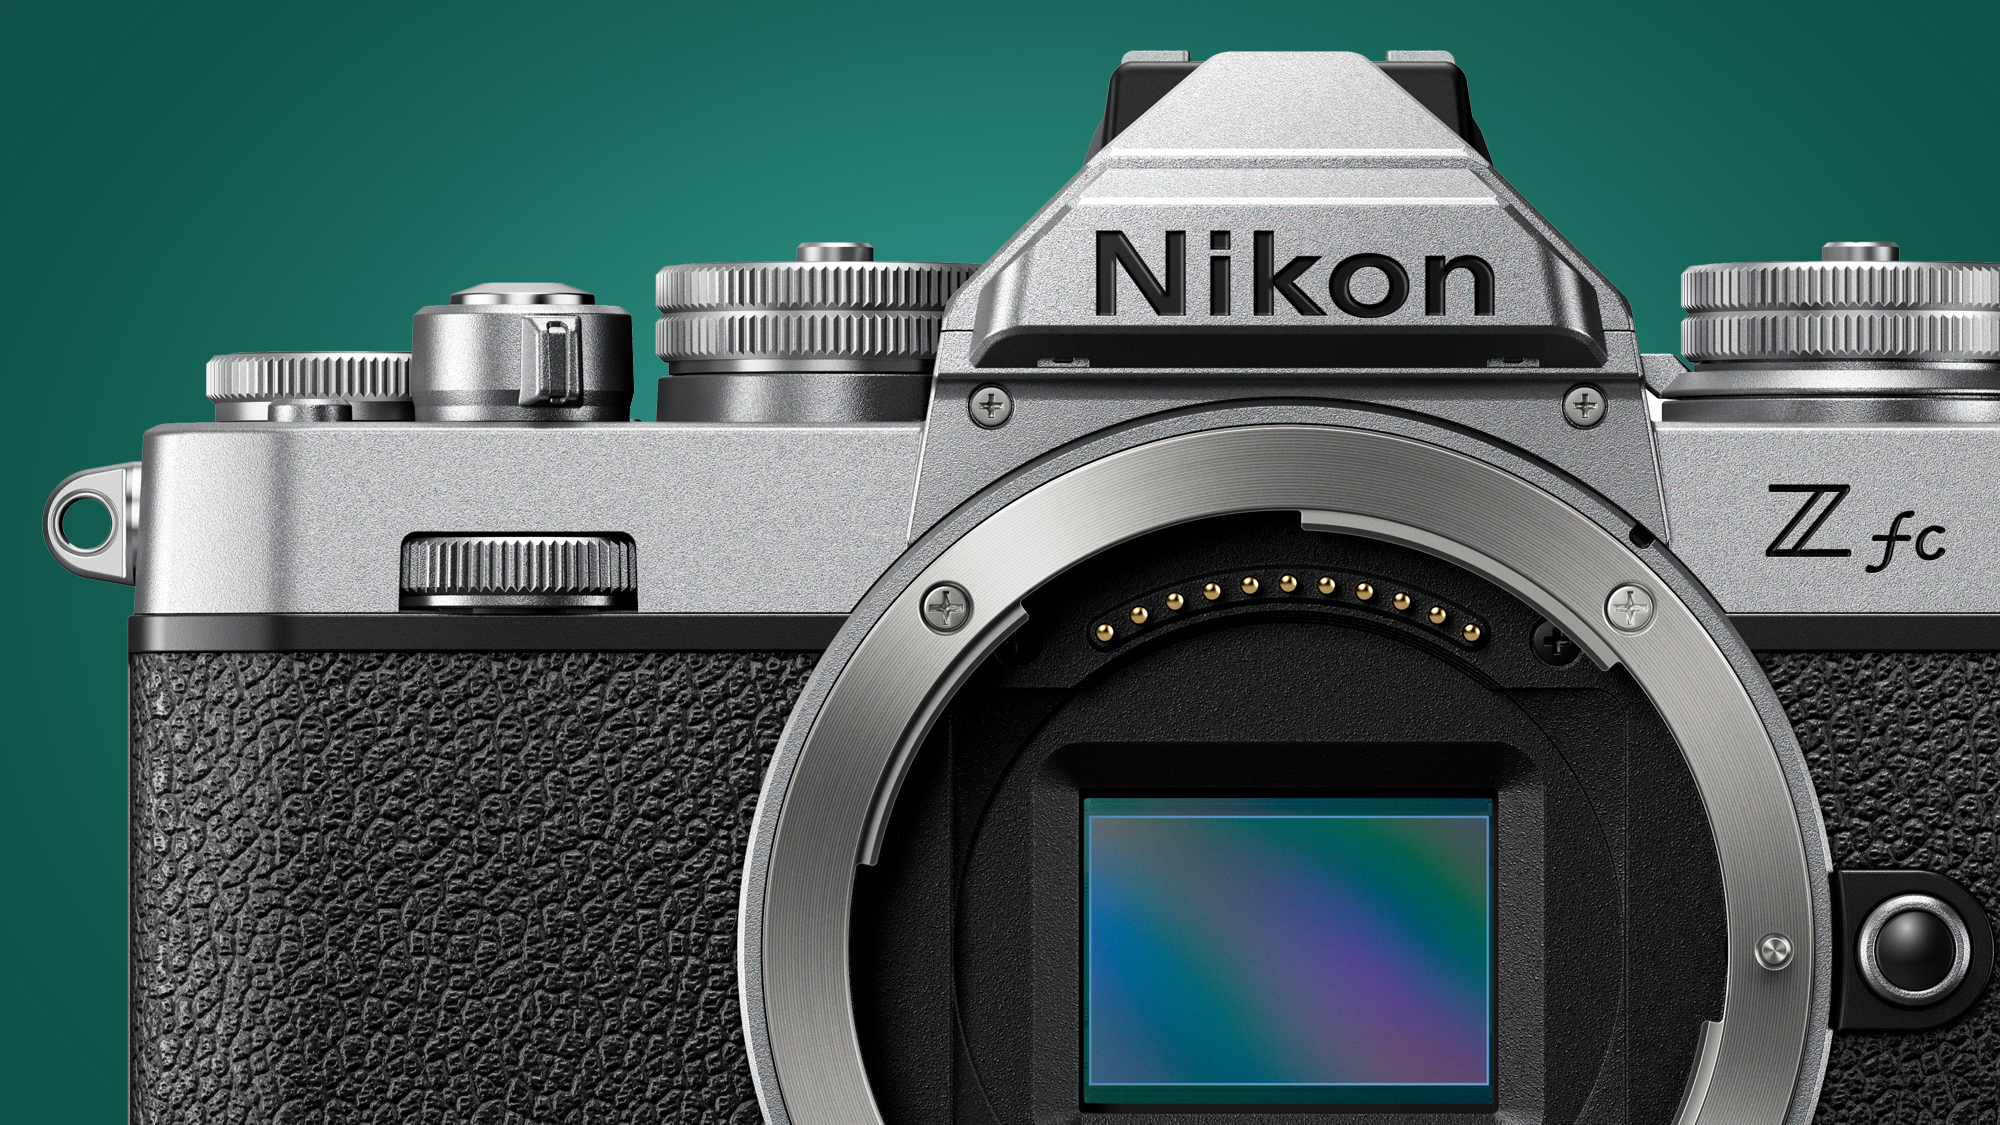 Image showing front of Nikon Zfc without lens